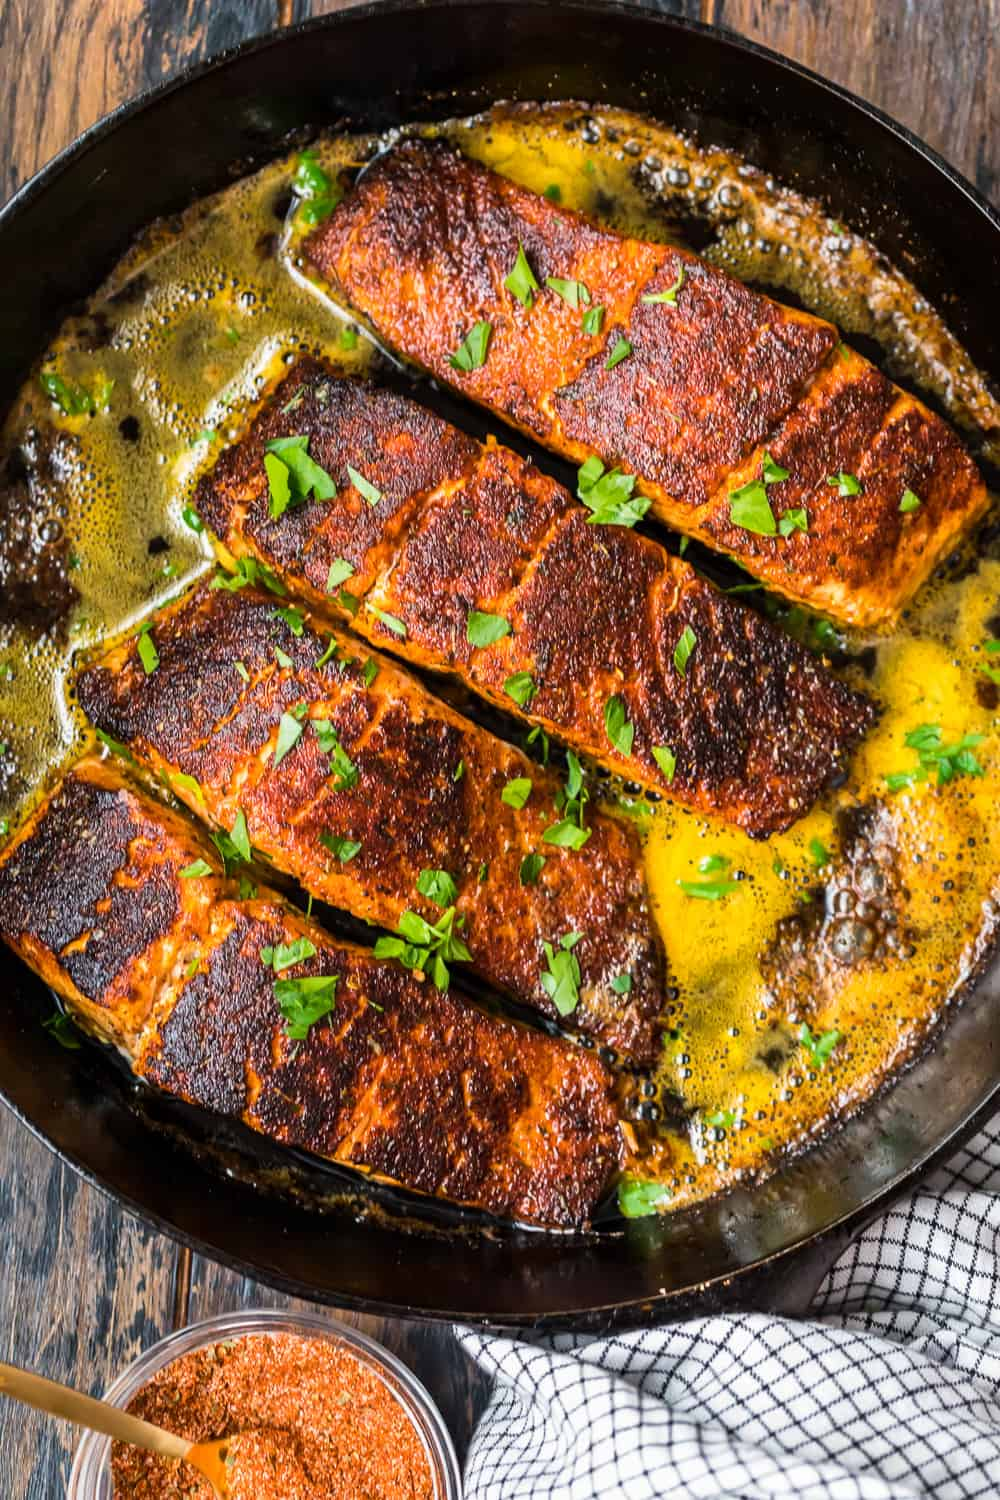 blackened salmons in a skillet